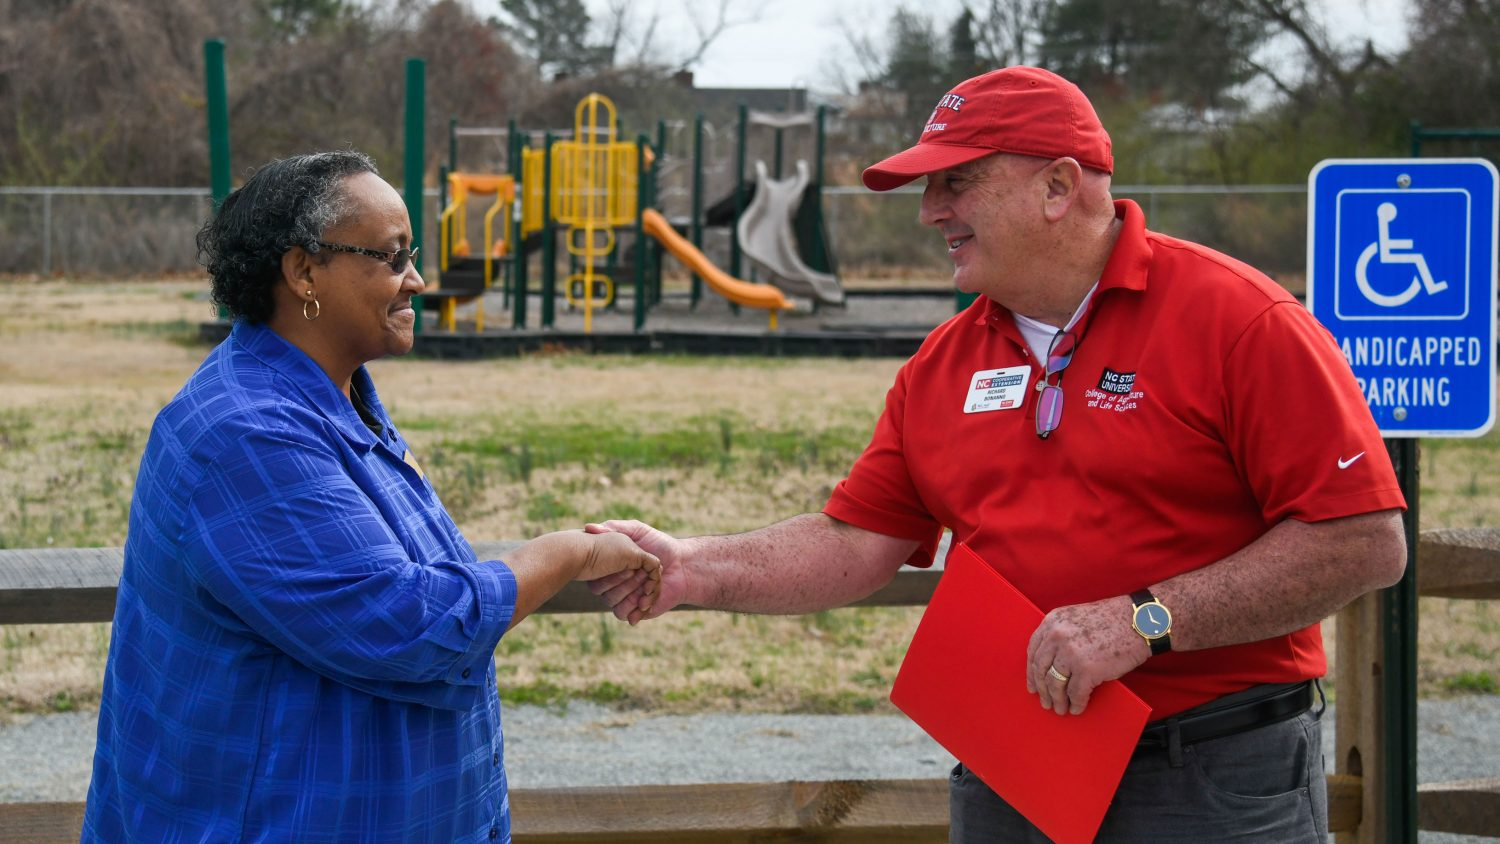 Two people shake hands. Playground equipment behind them.